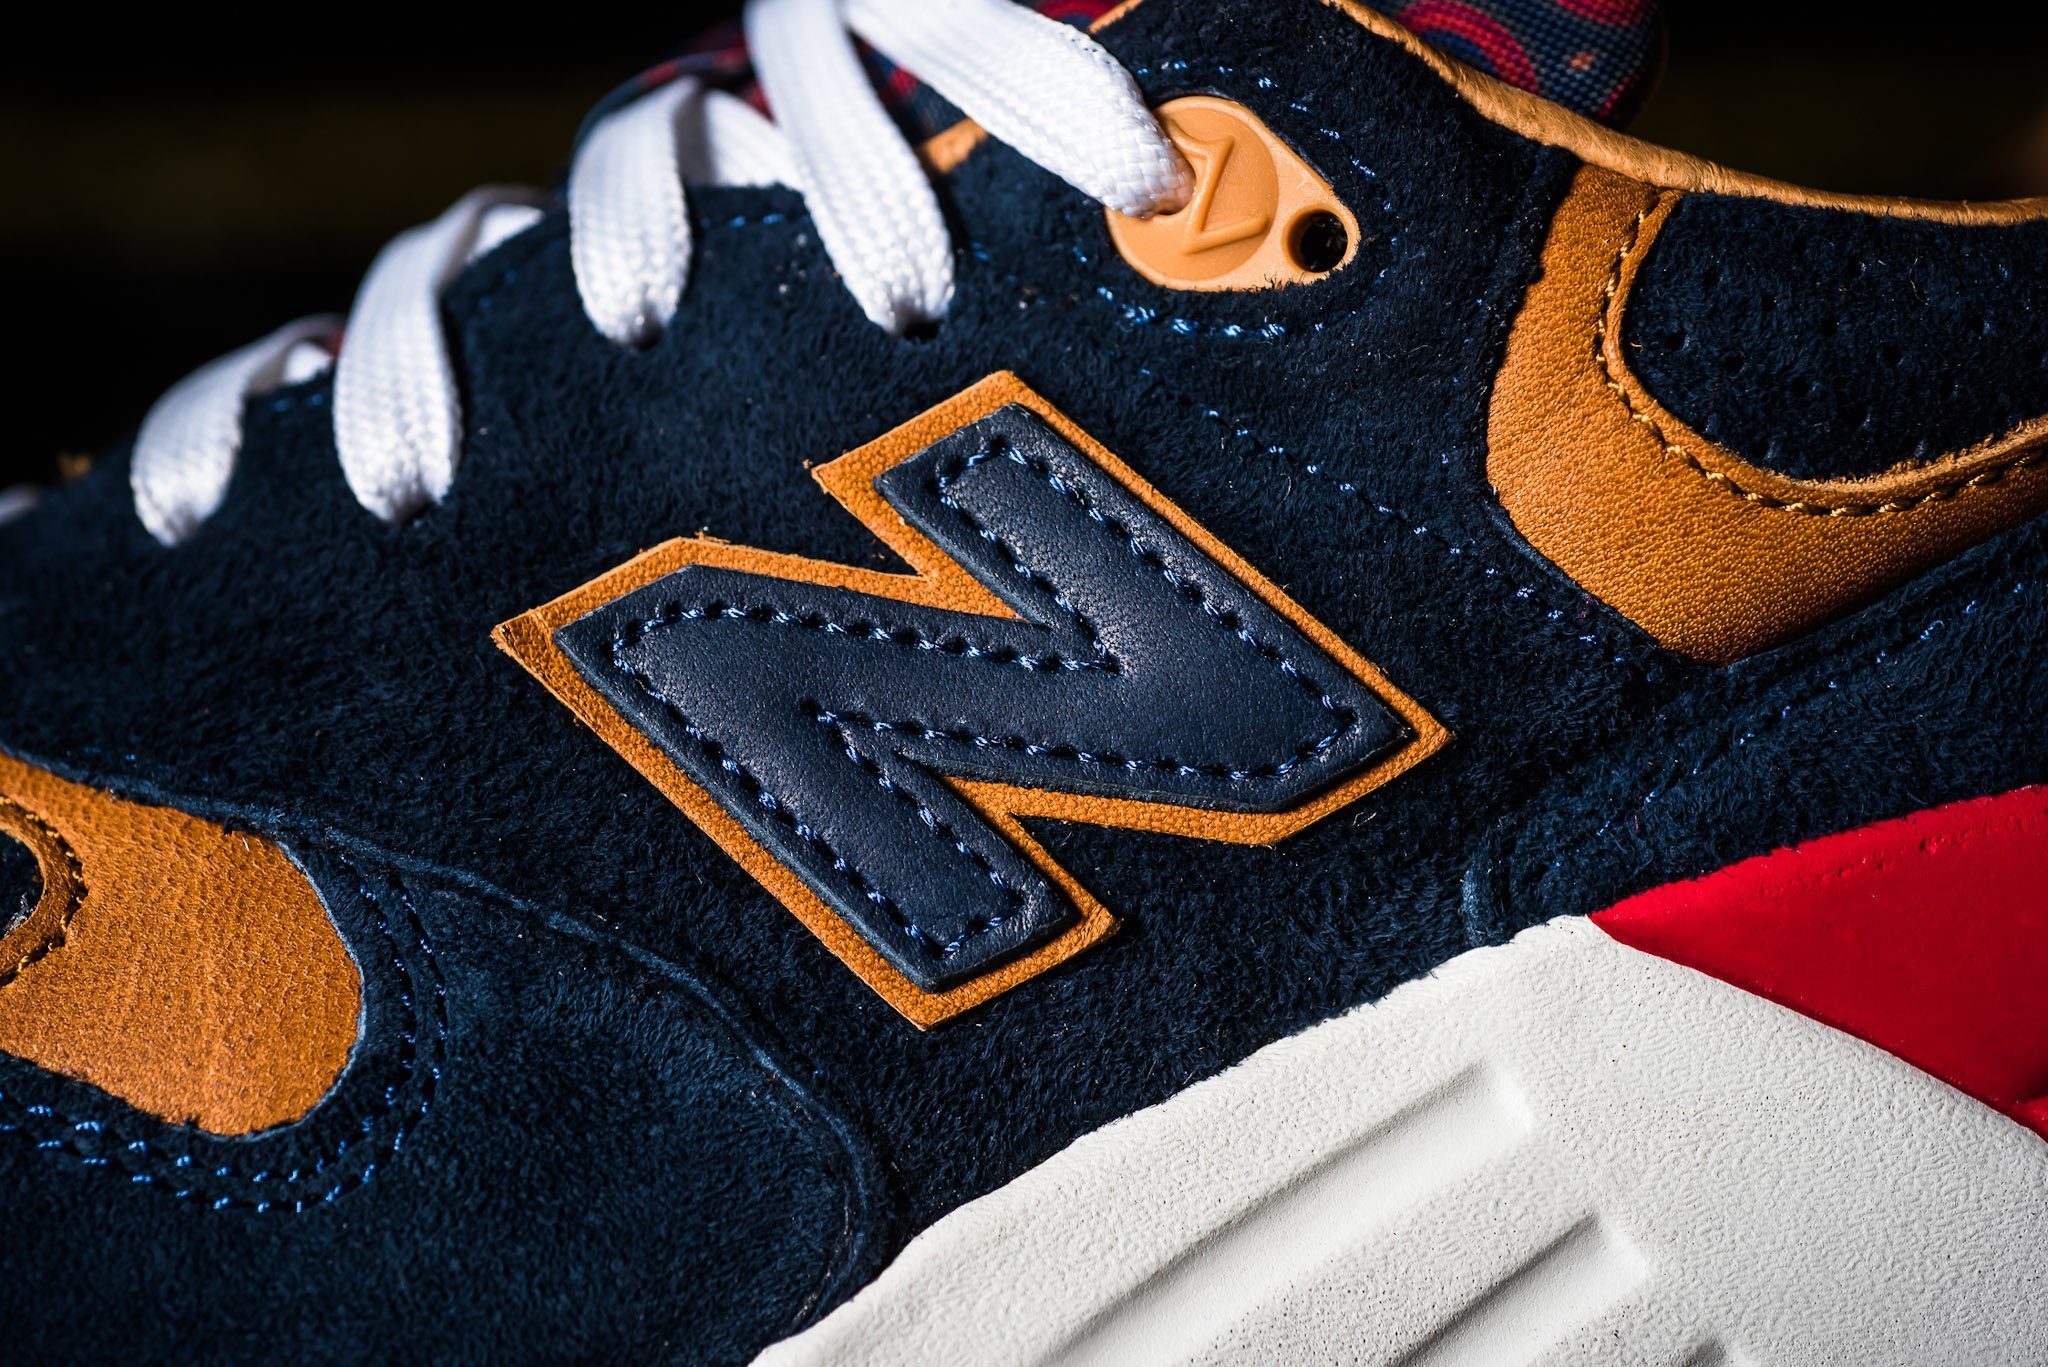 Sneaker Politics x New Balance Case 999 7